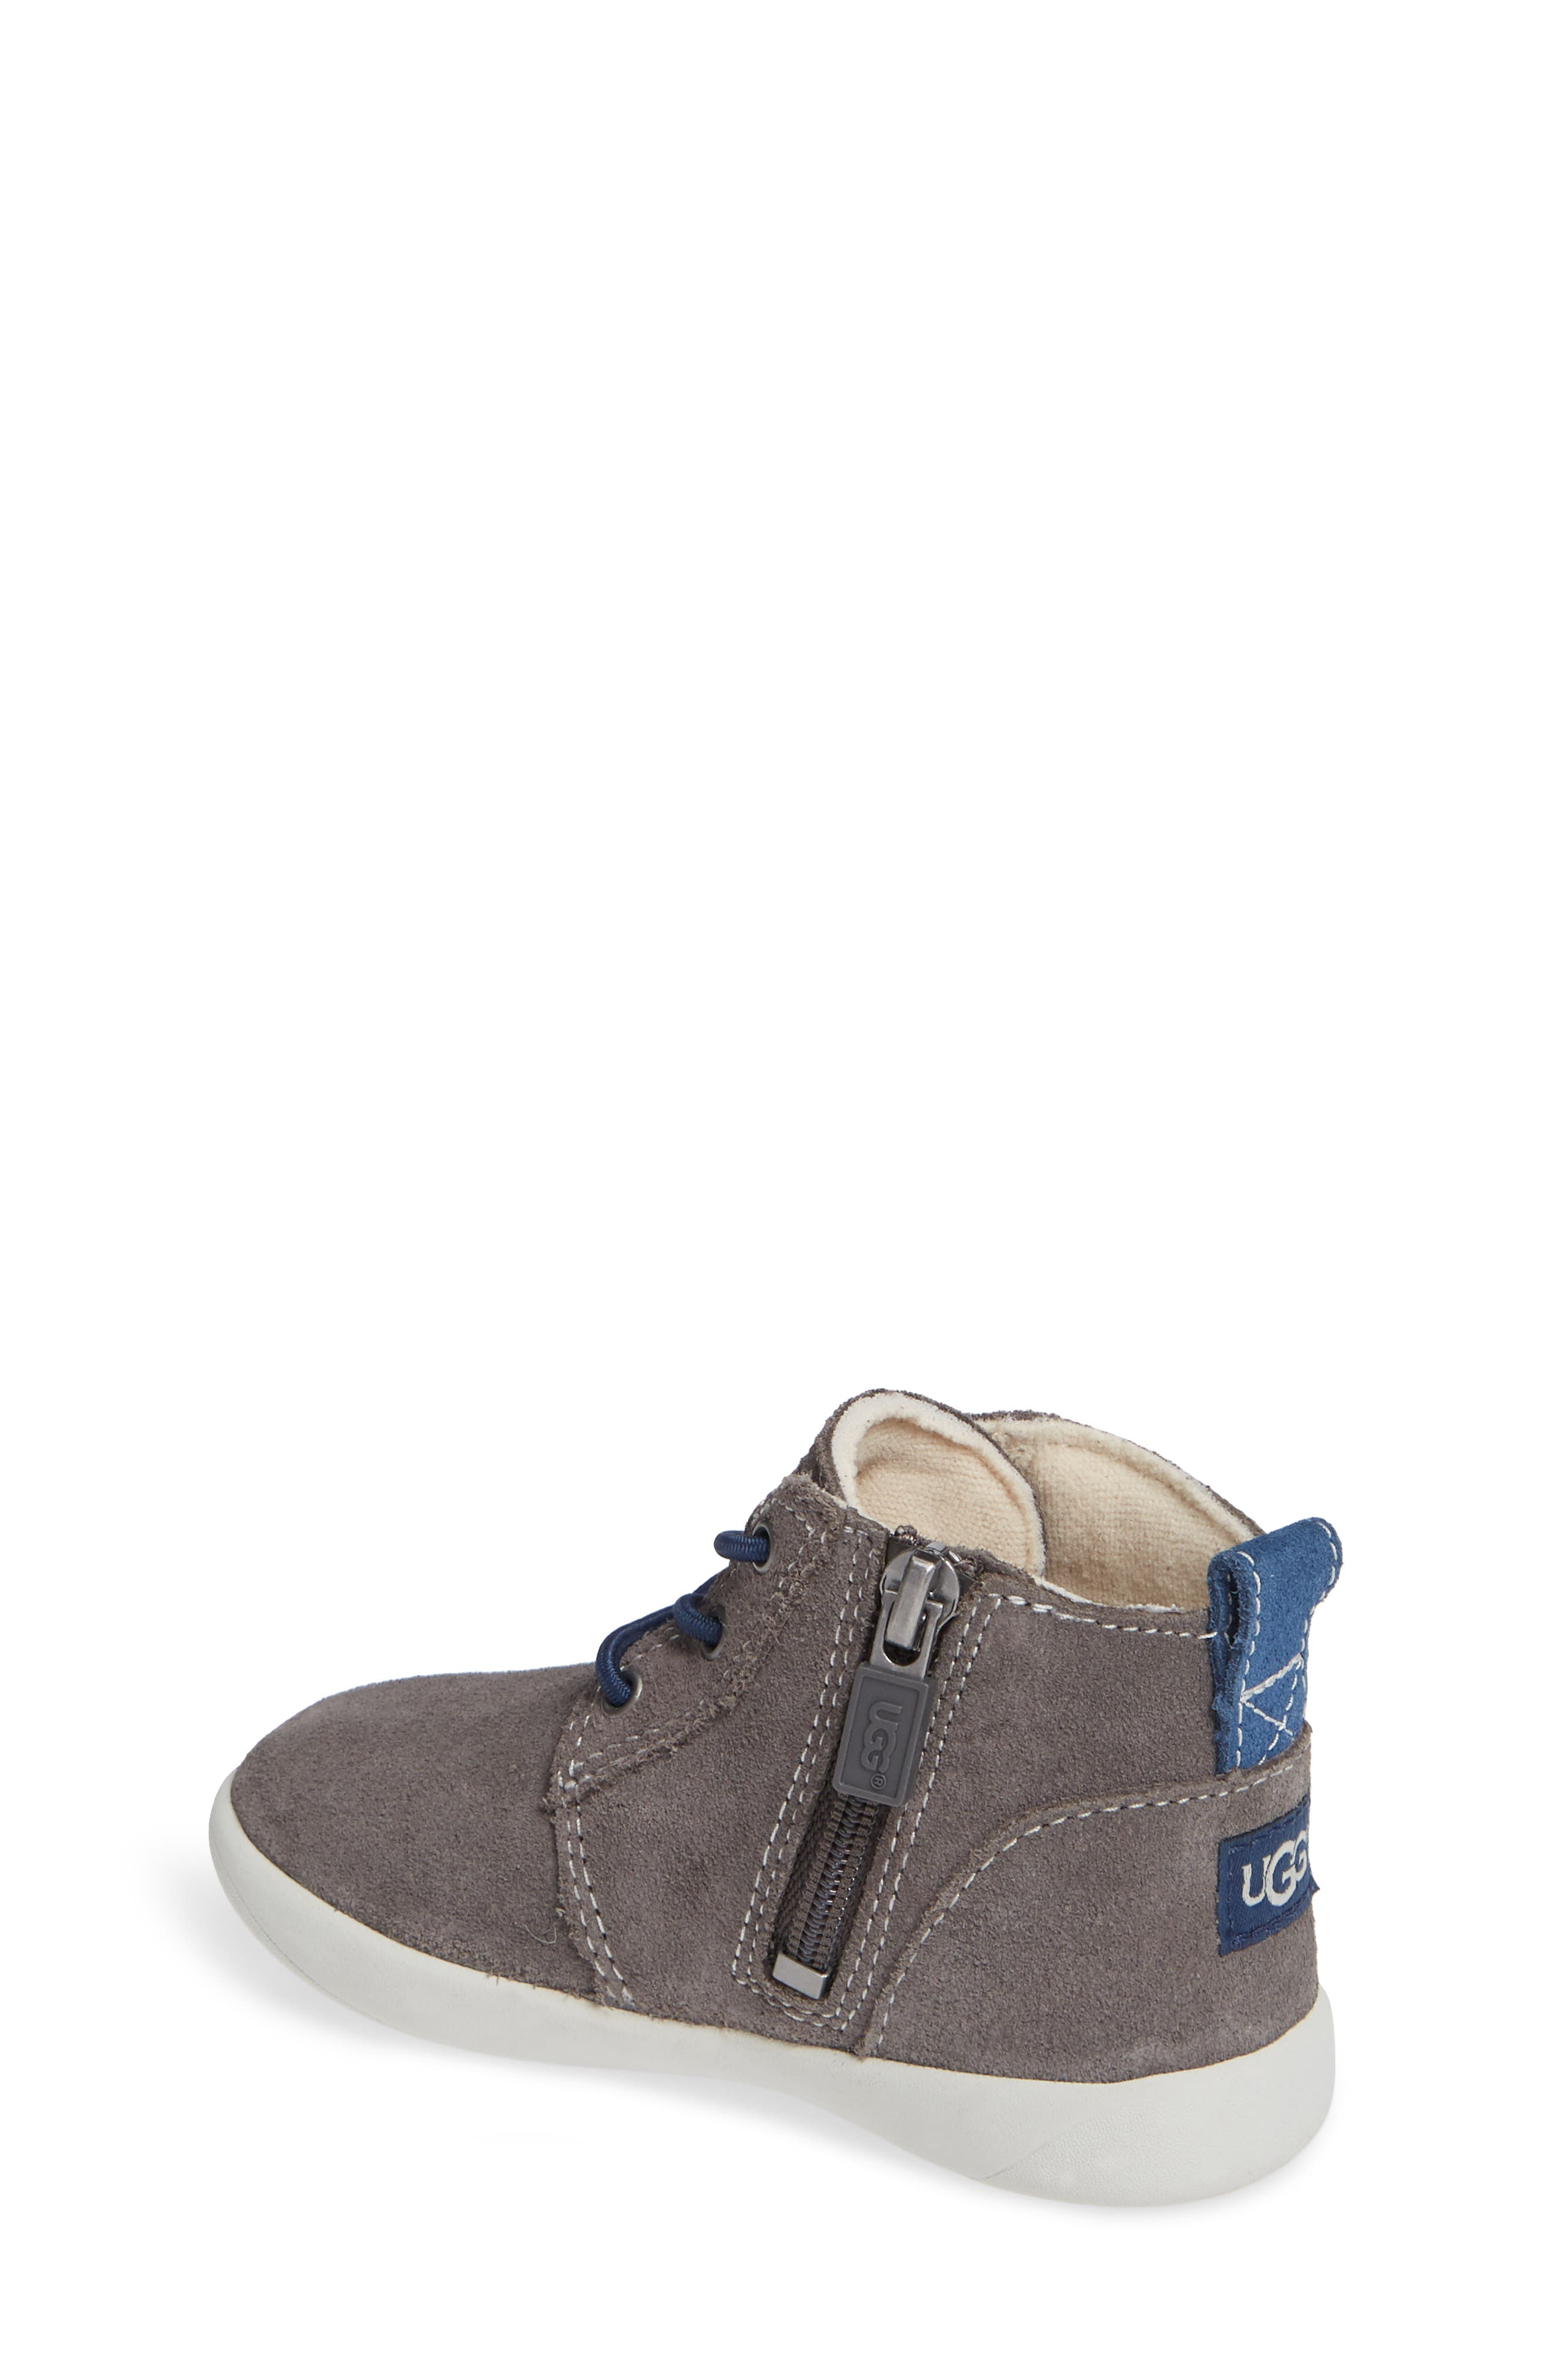 Kristjan Chukka Sneaker,                             Alternate thumbnail 2, color,                             CHARCOAL GREY